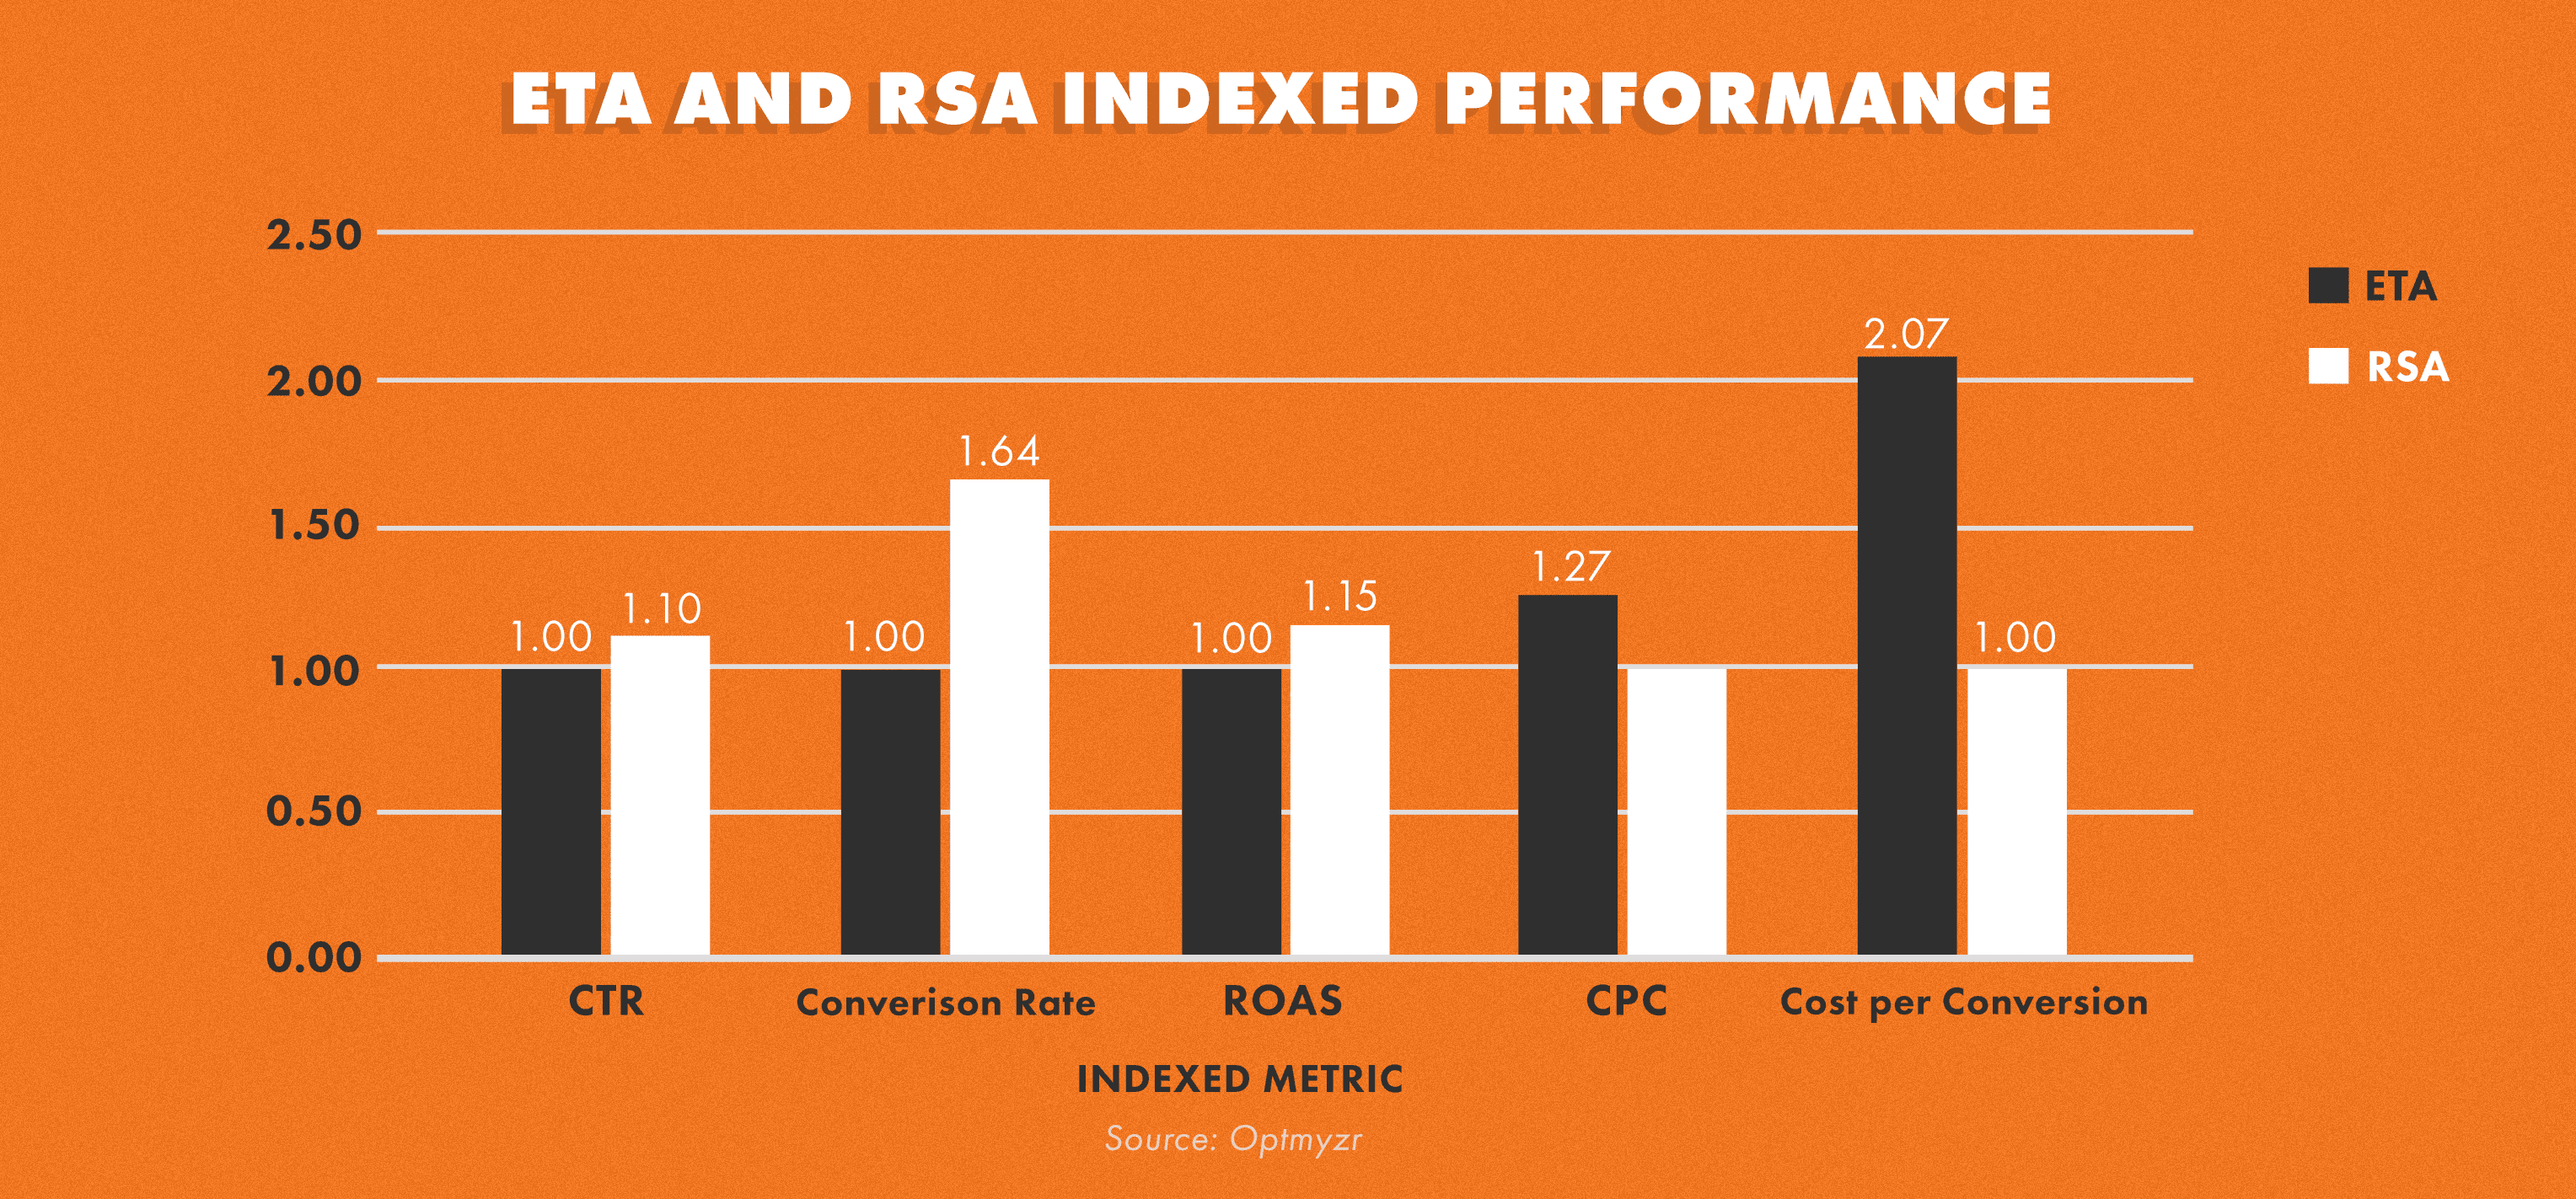 a chart showing comparison data of eta and rsa indexed performance